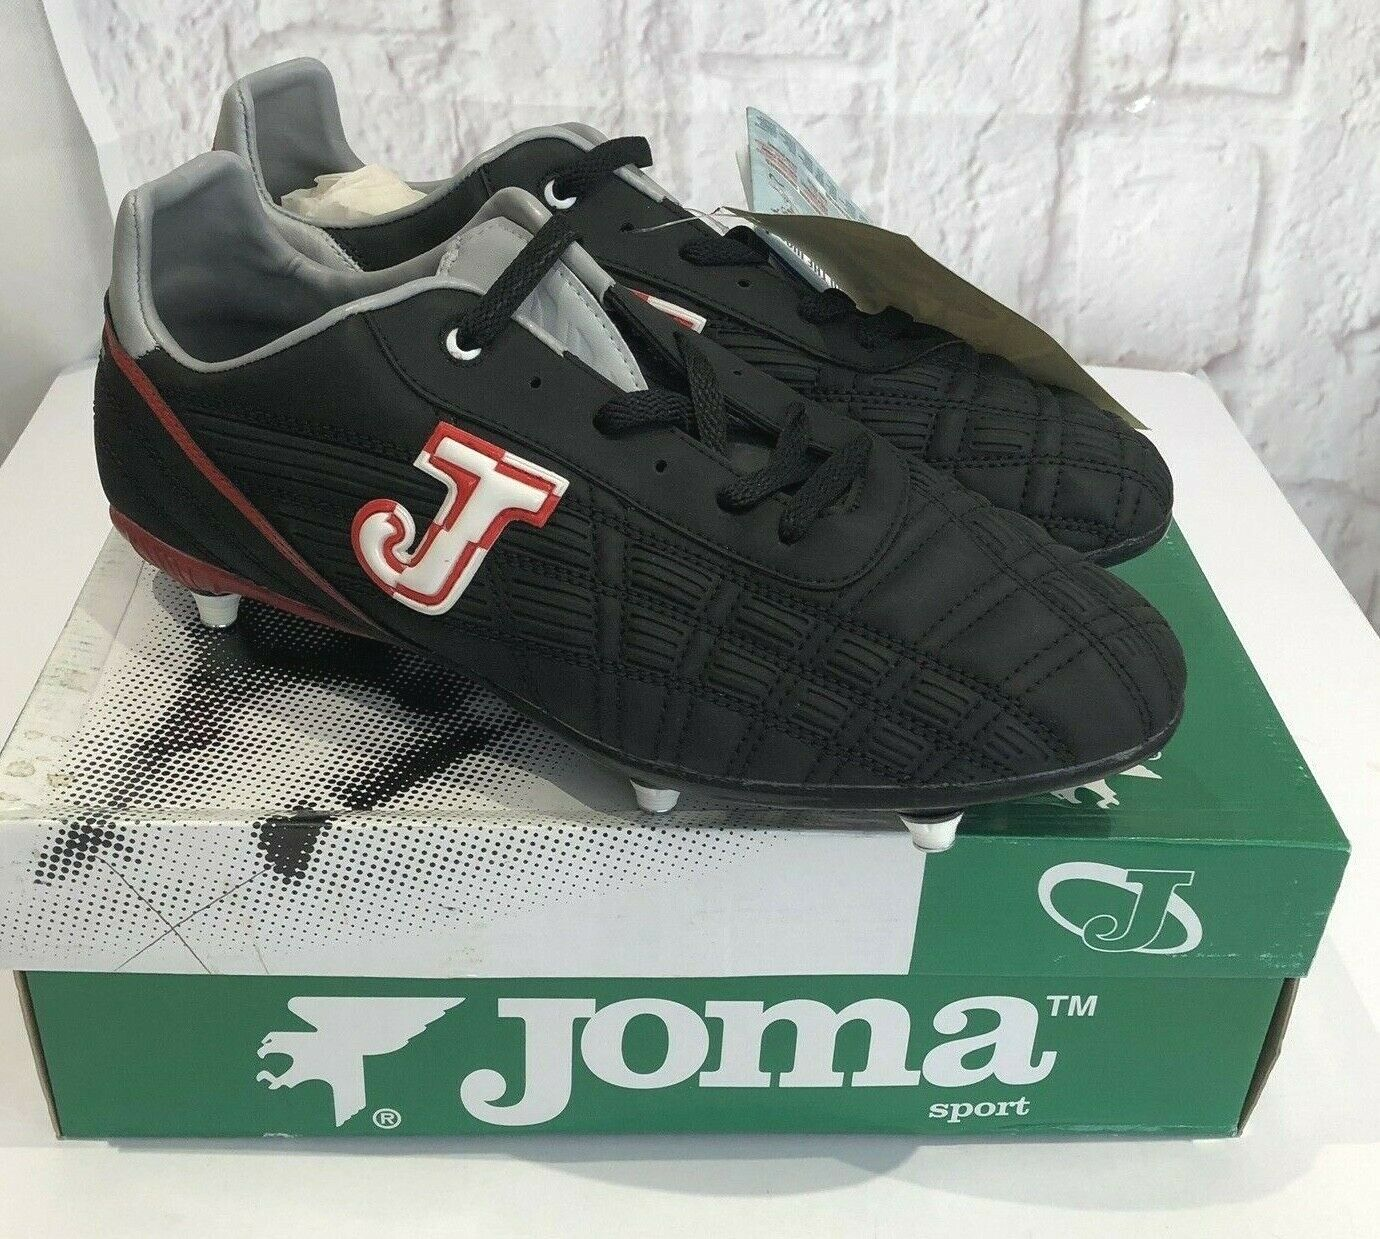 Joma Portillo Recambio Football Soccer Boots Size US 11.5 NEW